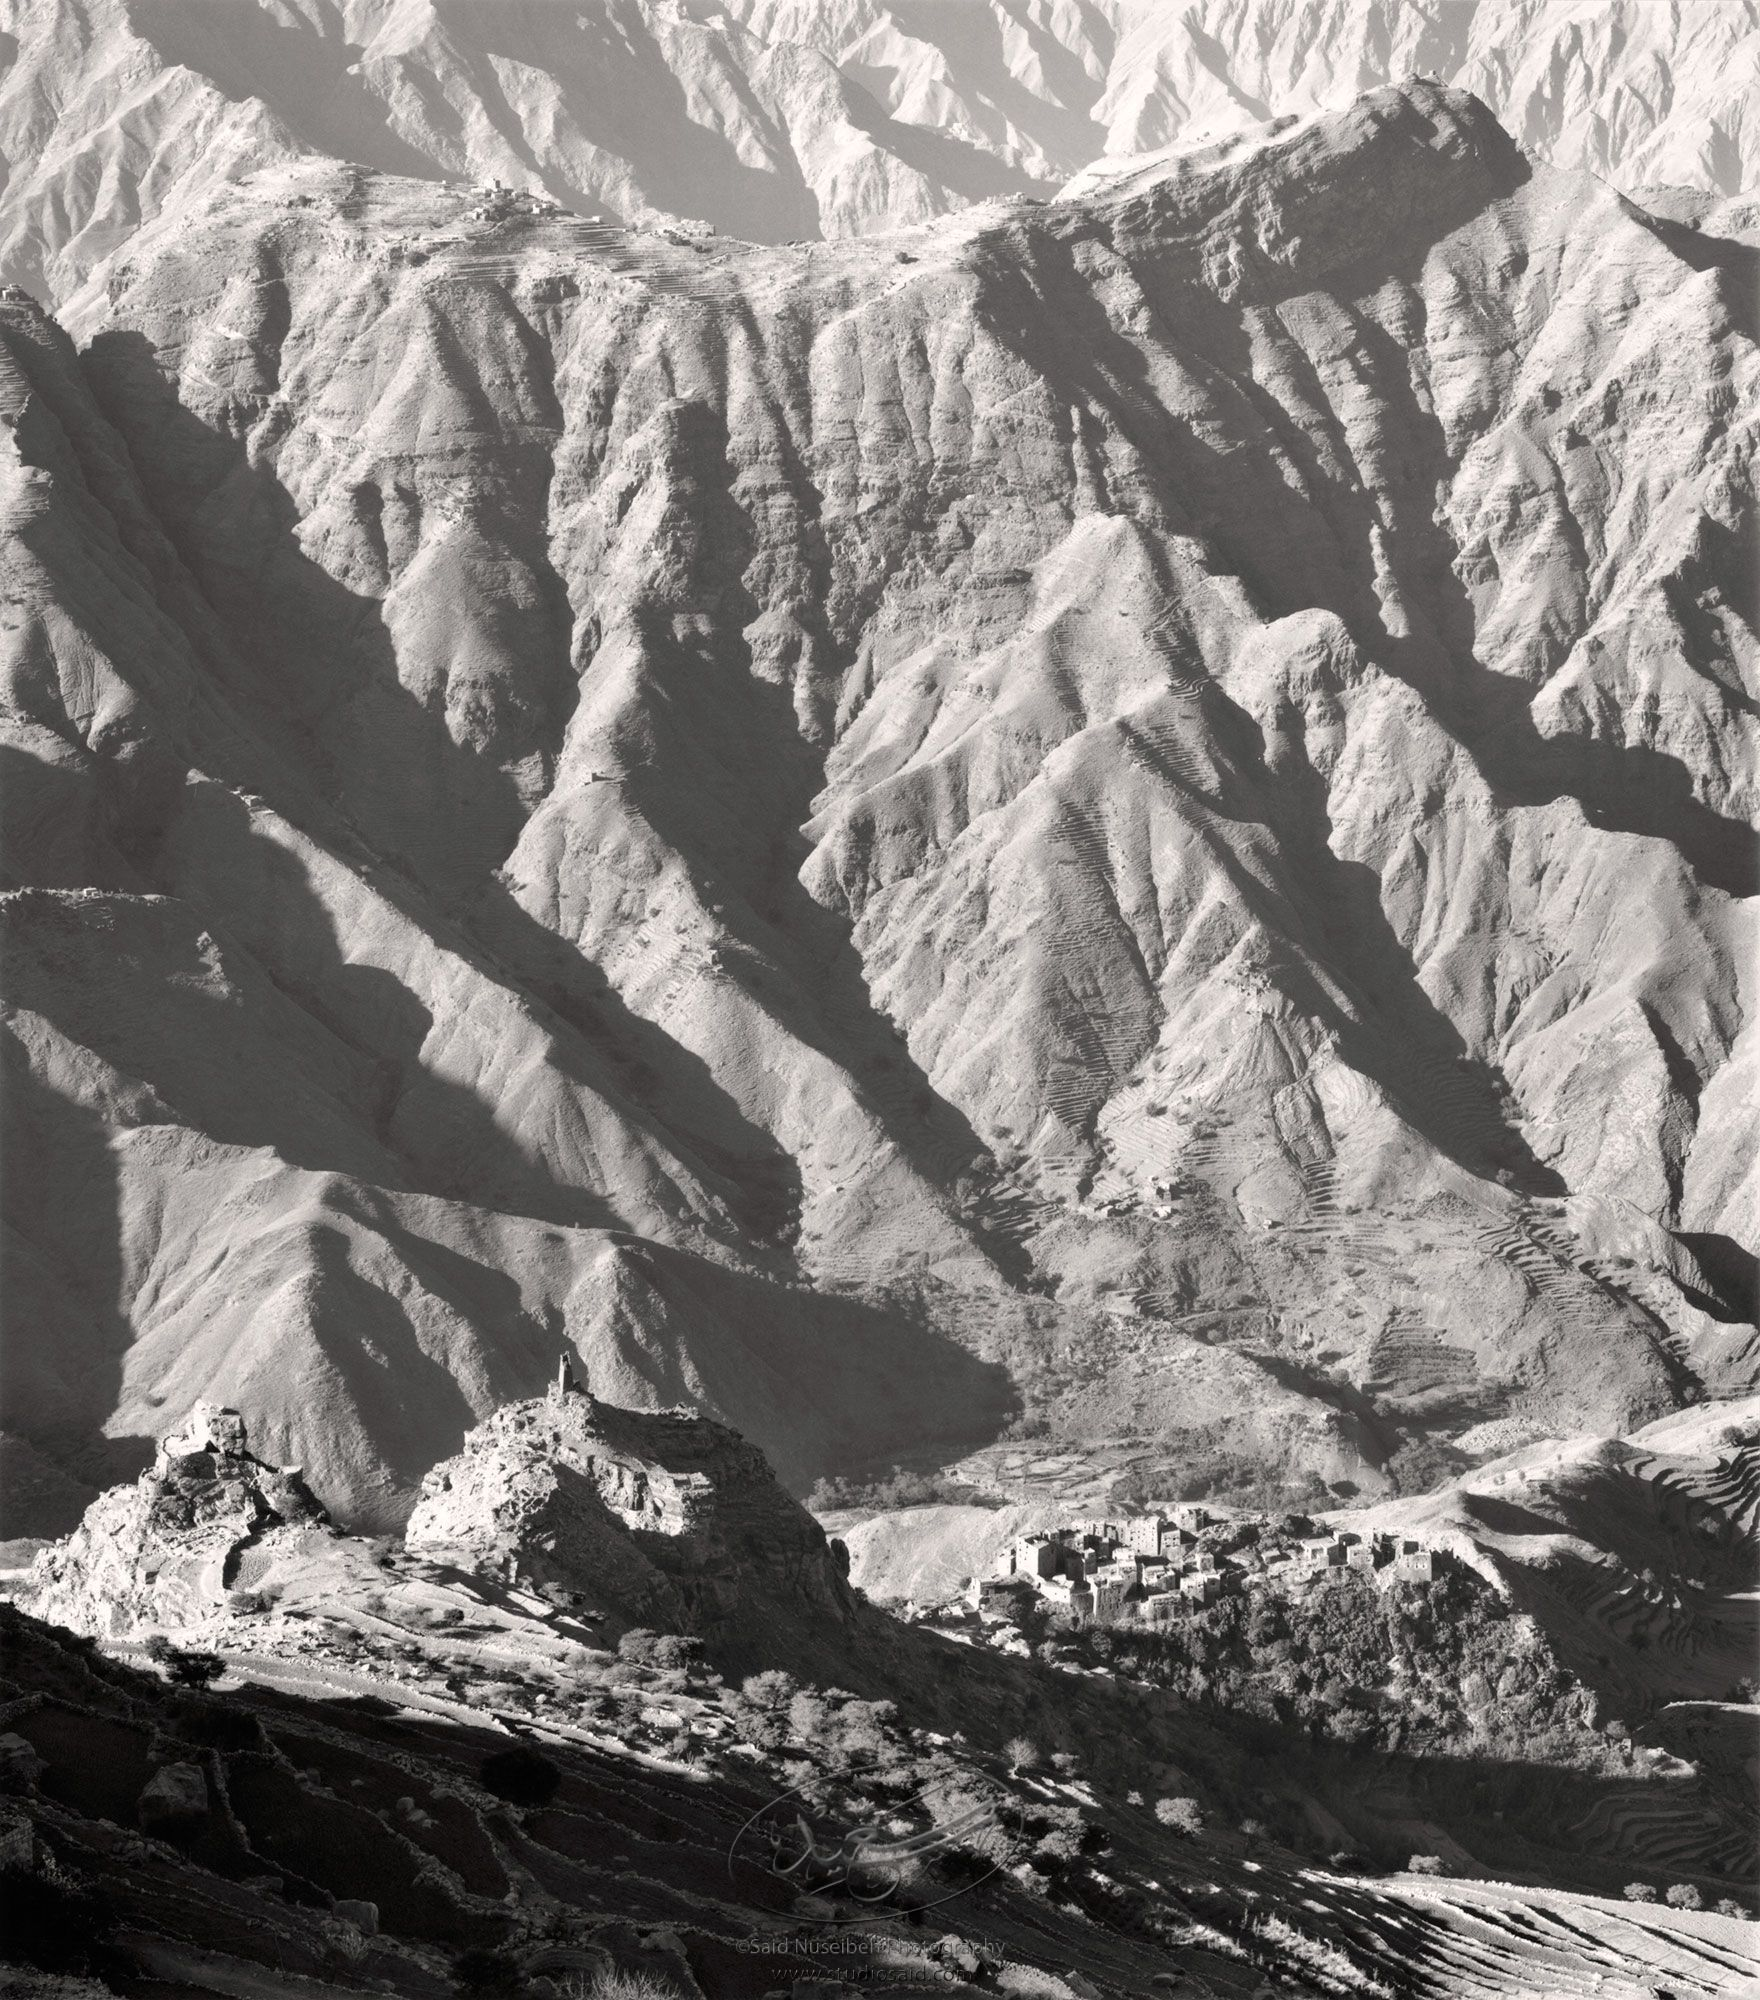 Dizzying heights and terraced hillsides of <i>Wadi Hajja</i>, Yemen